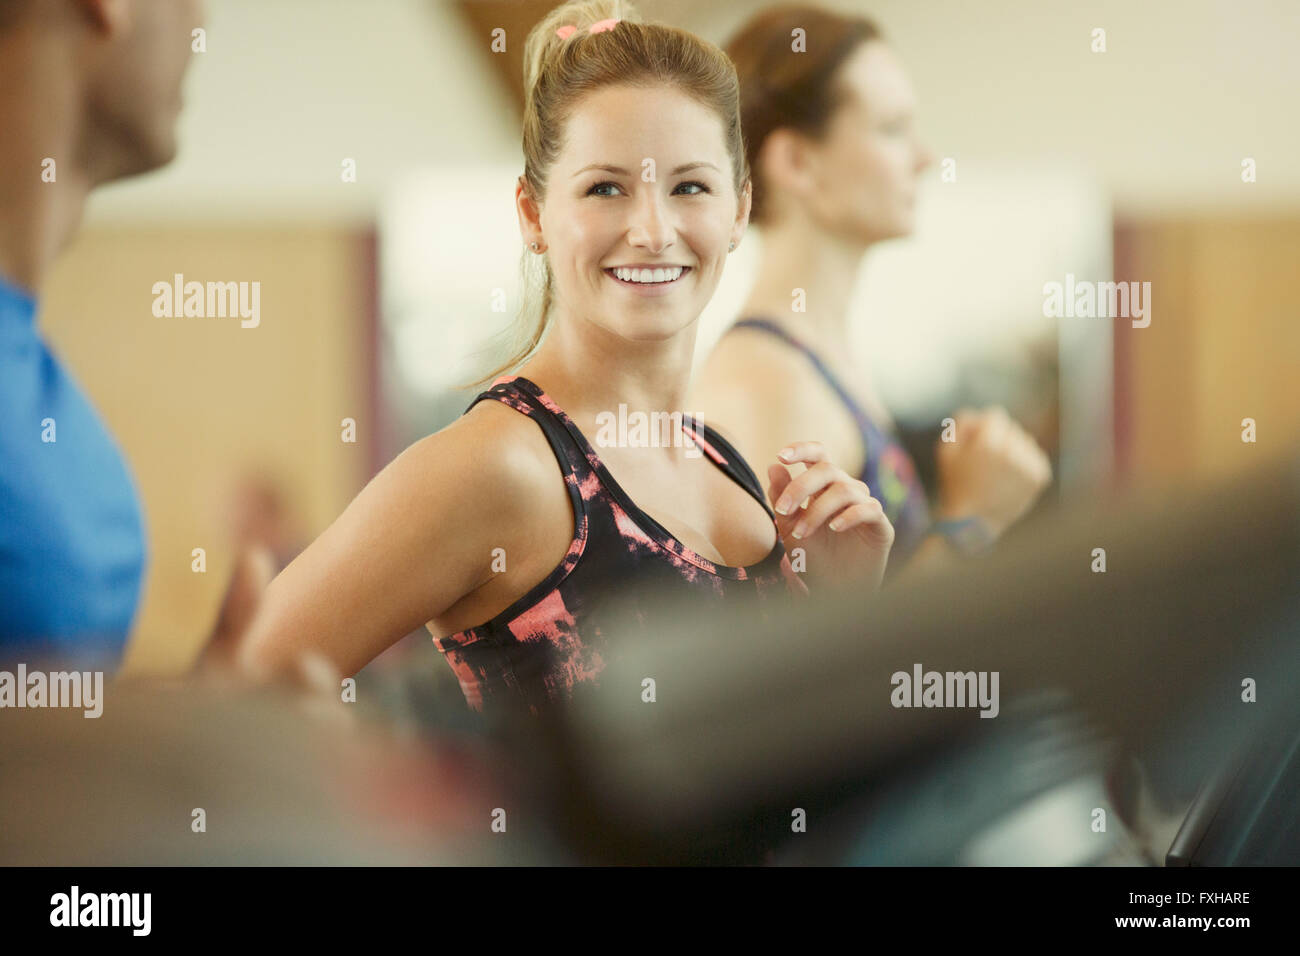 Smiling woman jogging on treadmill at gym Stock Photo